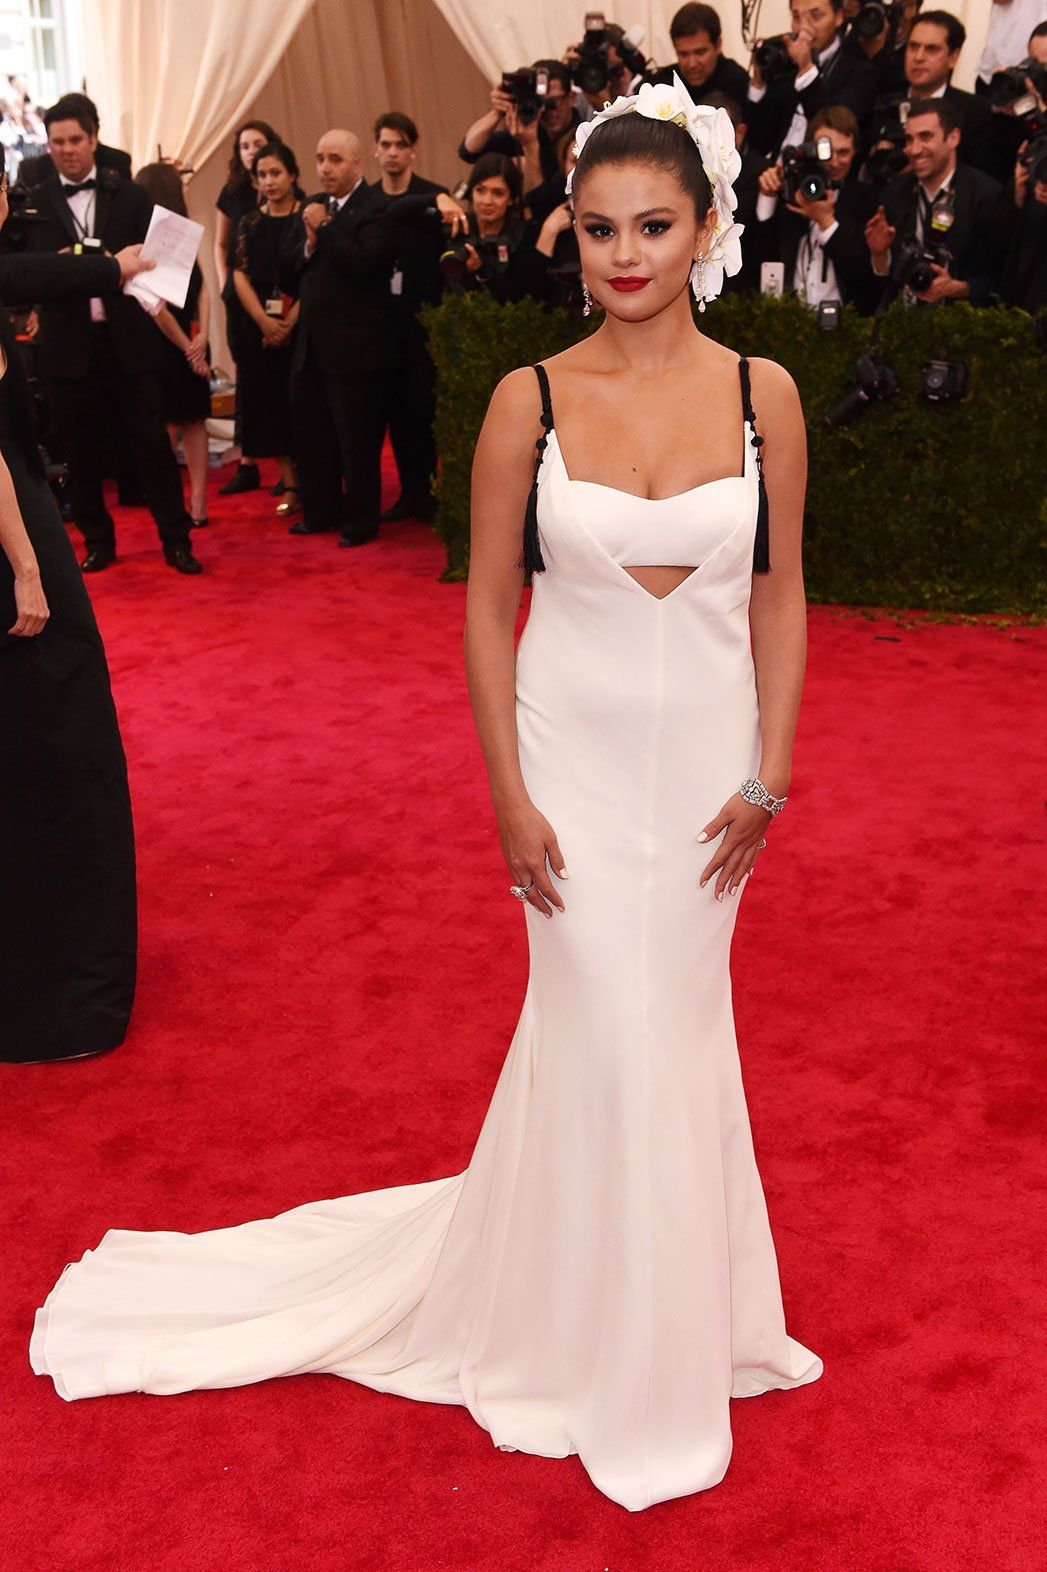 Met Gala 2015 The Red Carpet Arrivals Met Gala Looks Celebrity Dresses Dresses